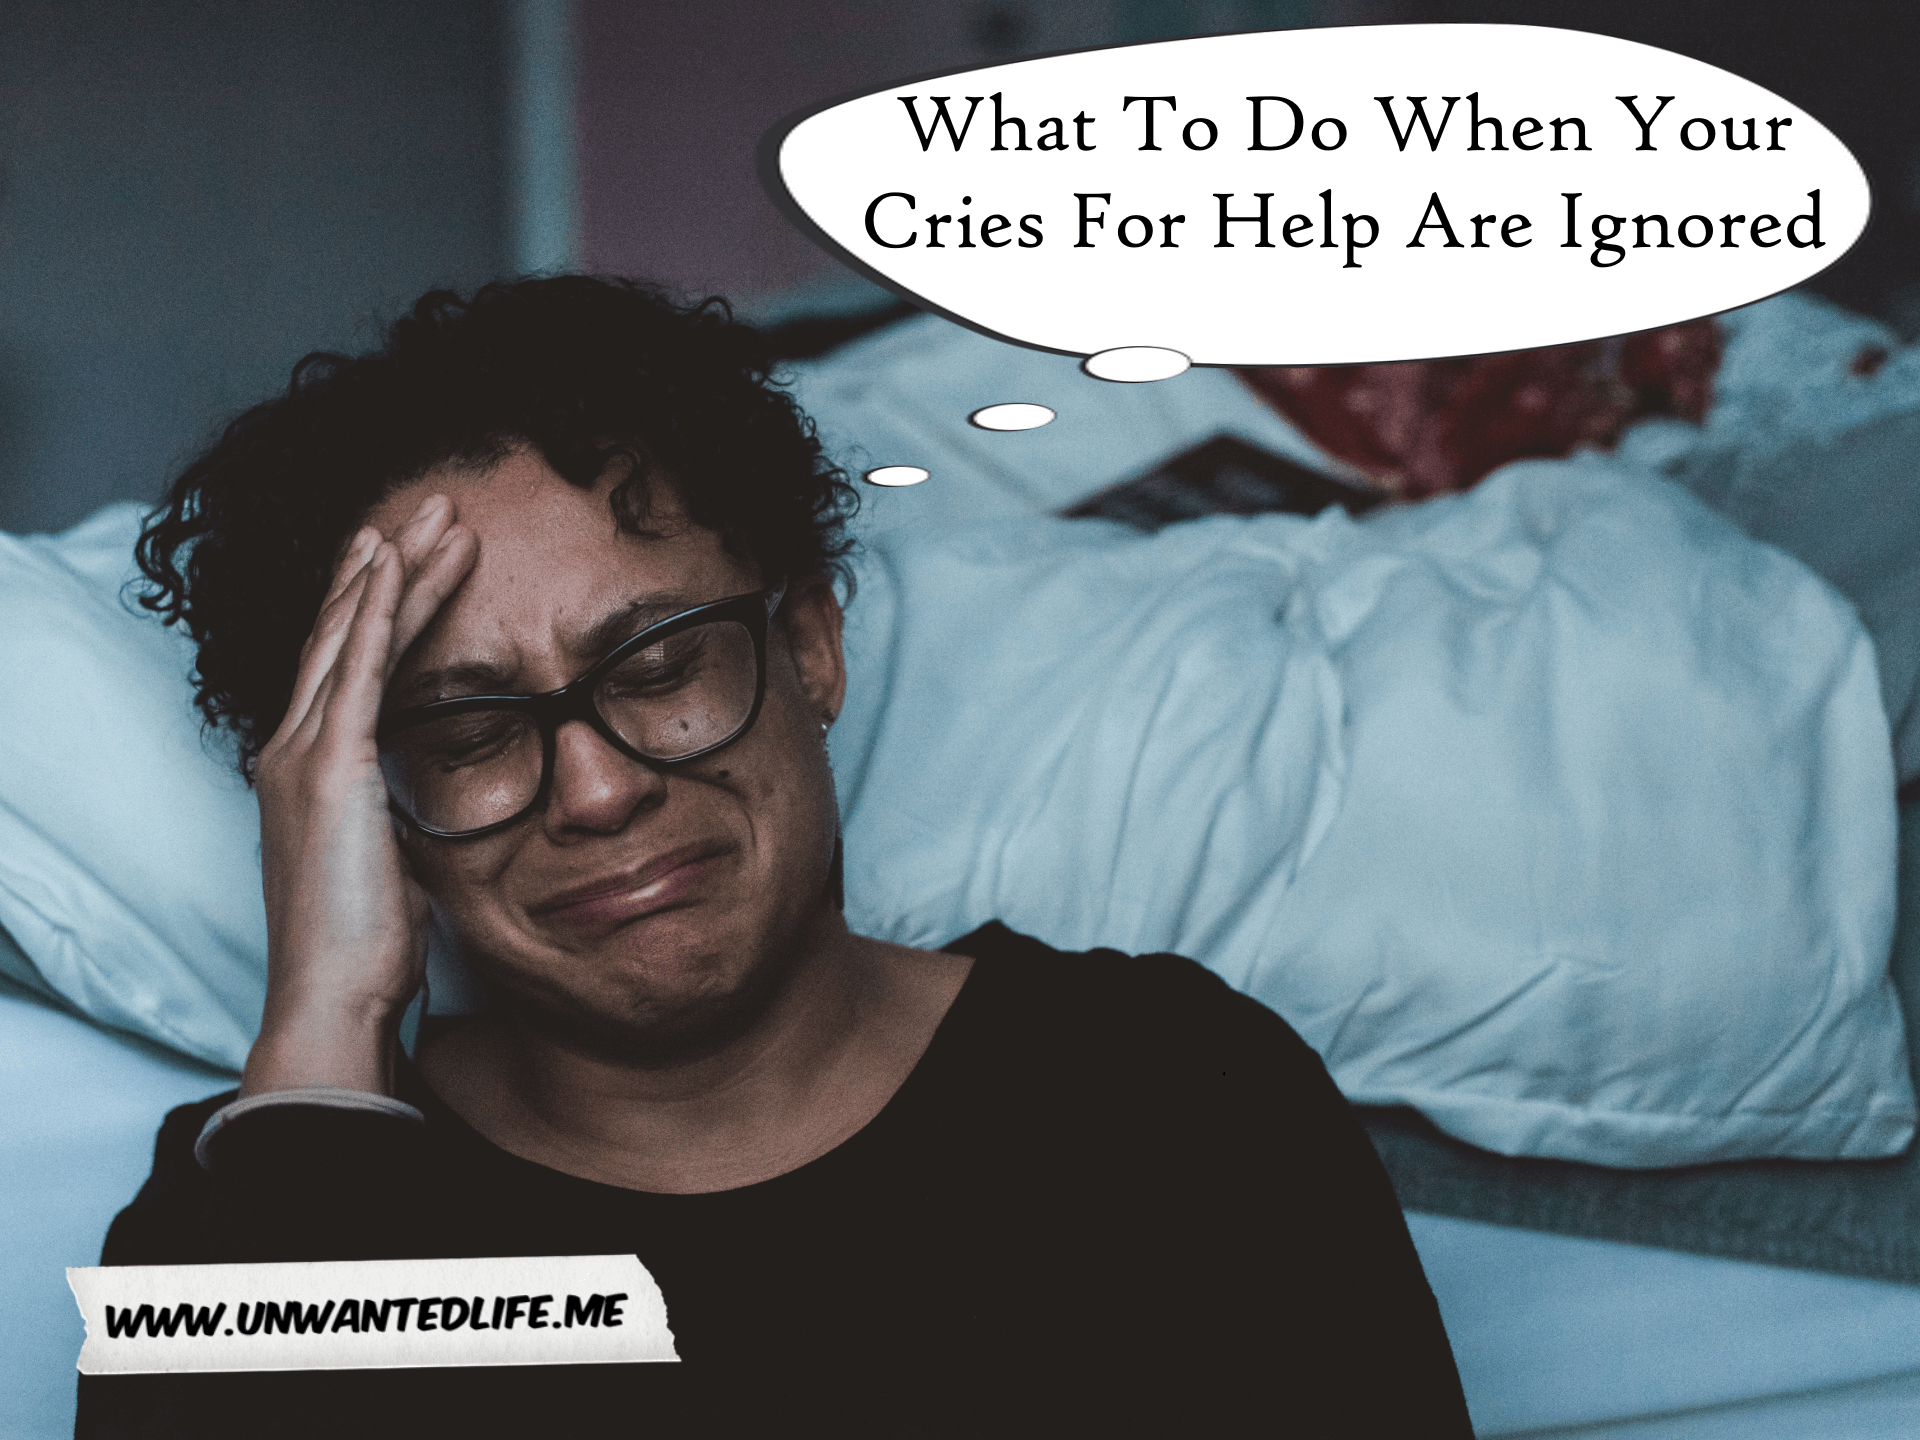 What To Do When Your Cries For Help Are Ignored | Mental Health and Wellbeing